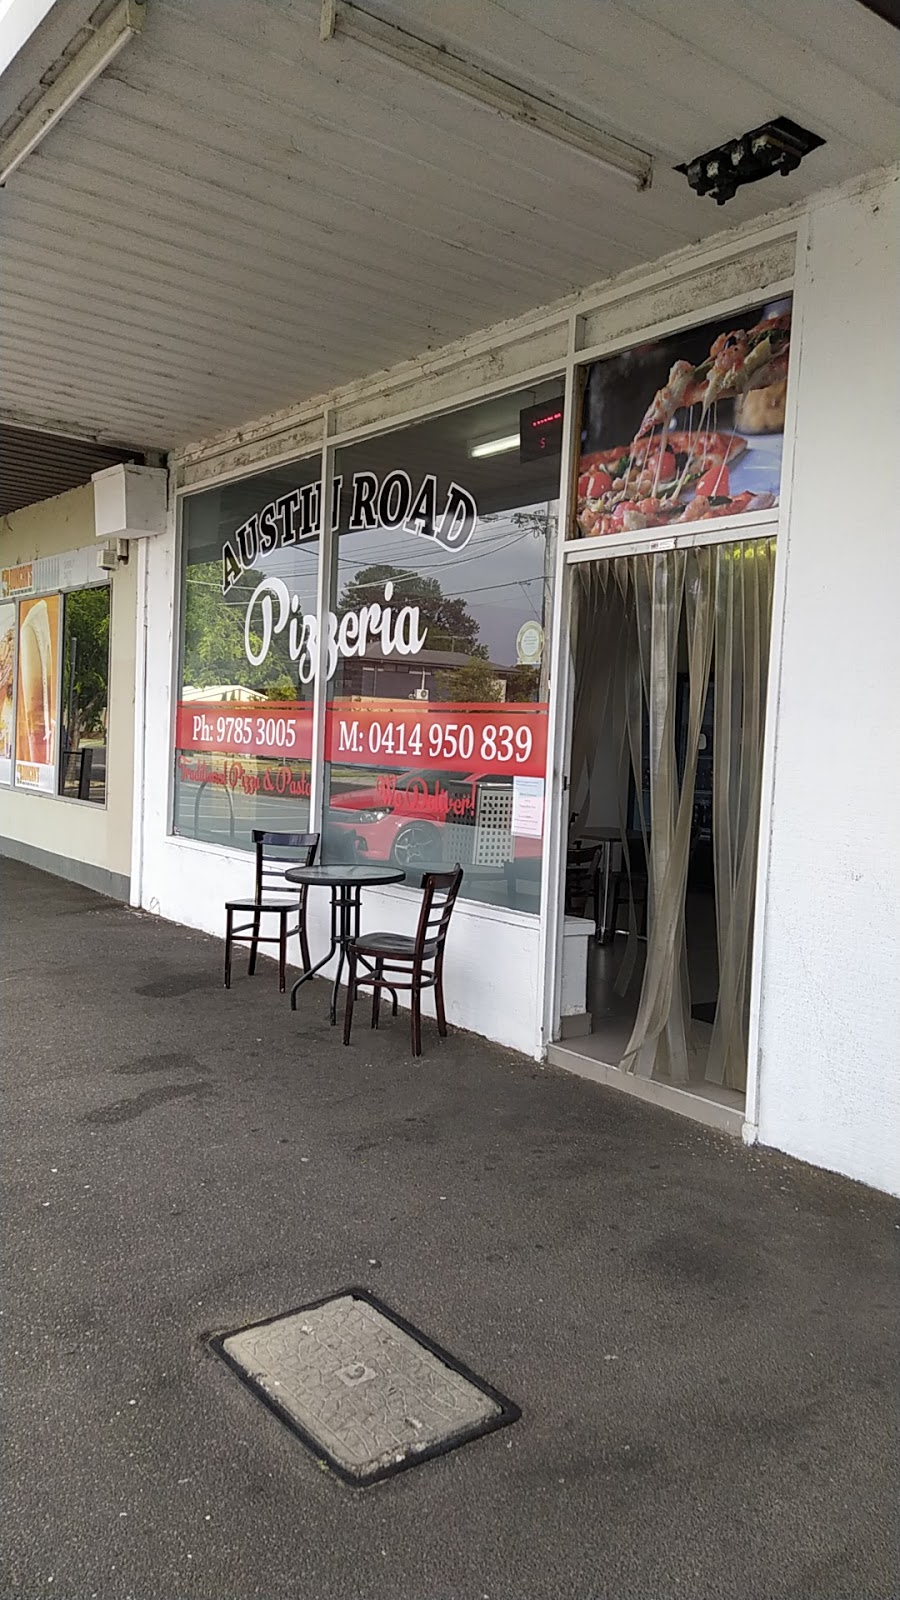 Austin Road Pizzeria | meal delivery | 146 Austin Rd, Seaford VIC 3198, Australia | 0397853005 OR +61 3 9785 3005